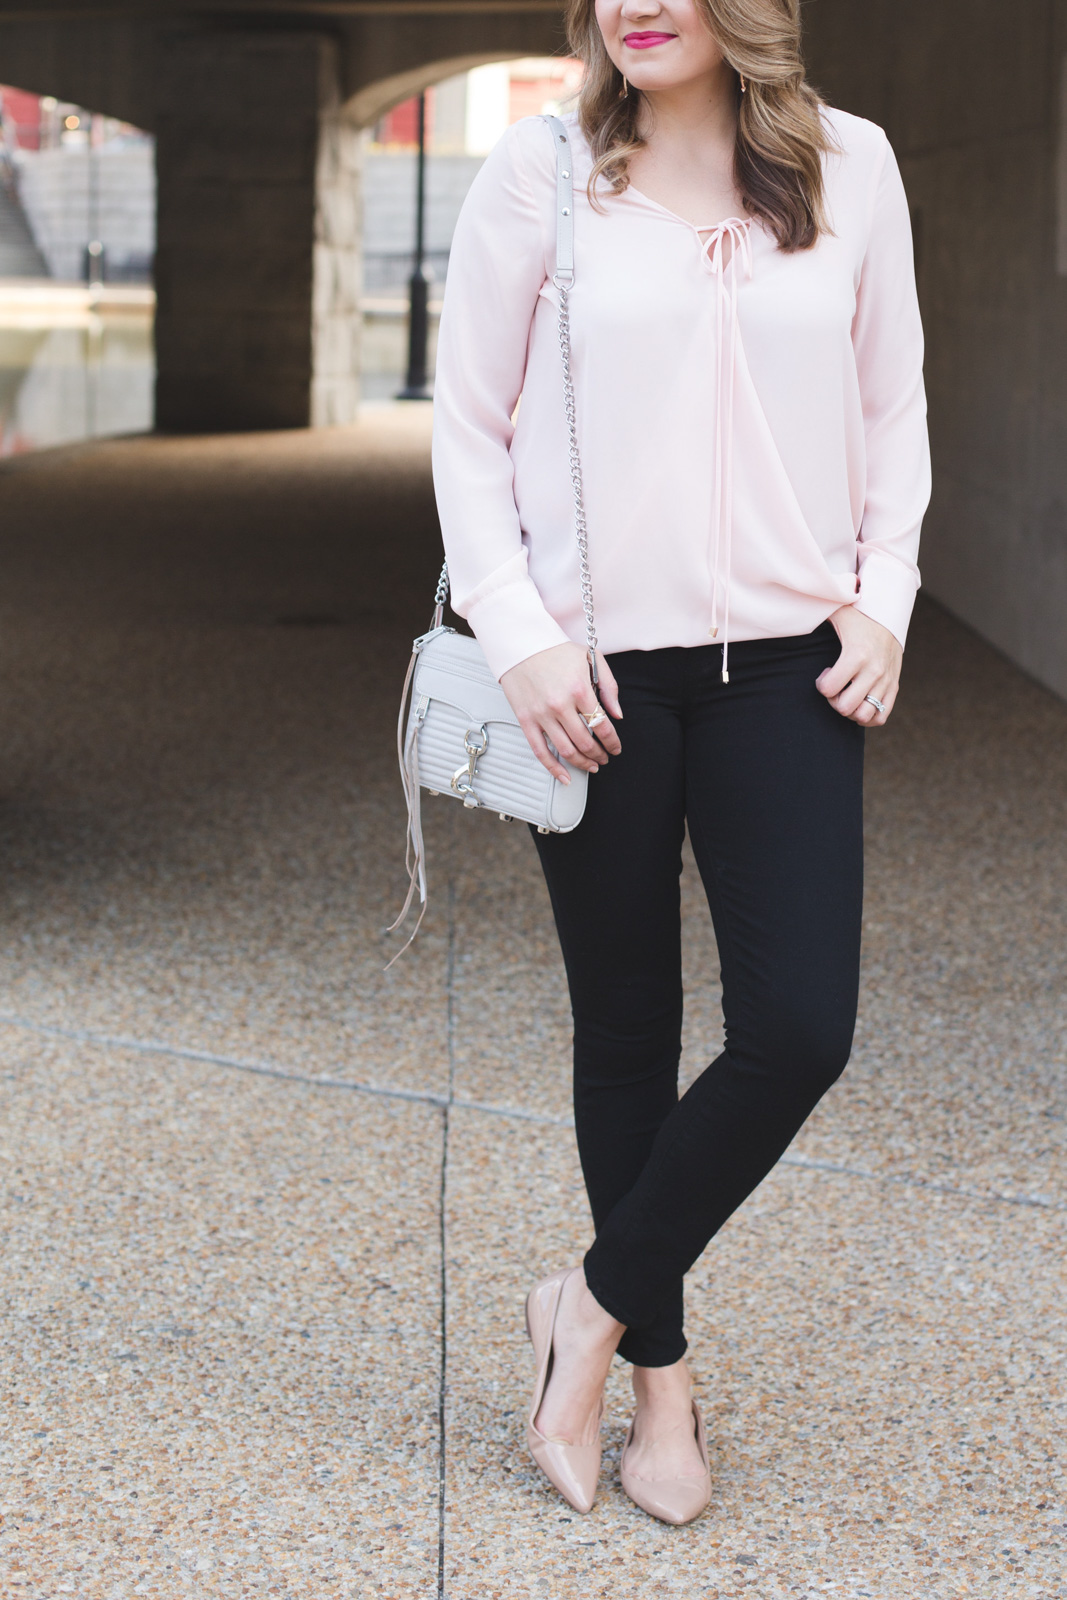 feminine spring outfit - pink wrap front top with black jeans and nude flats. | Click through for more Spring outfit inspiration or to shop this look! www.bylaurenm.com